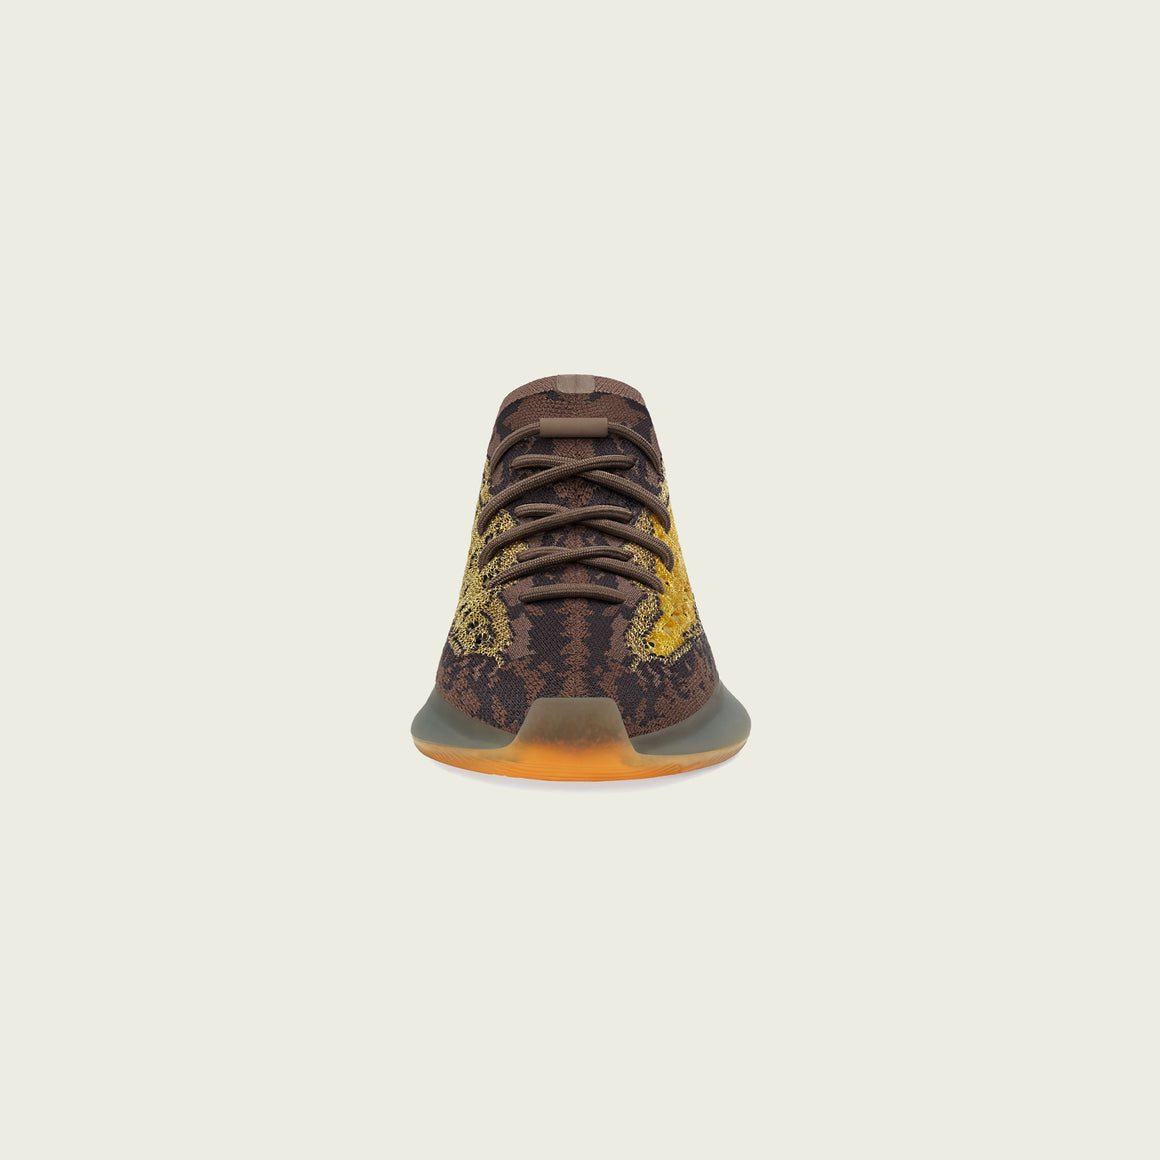 adidas - Yeezy Boost 380 - LMNTE - Up There